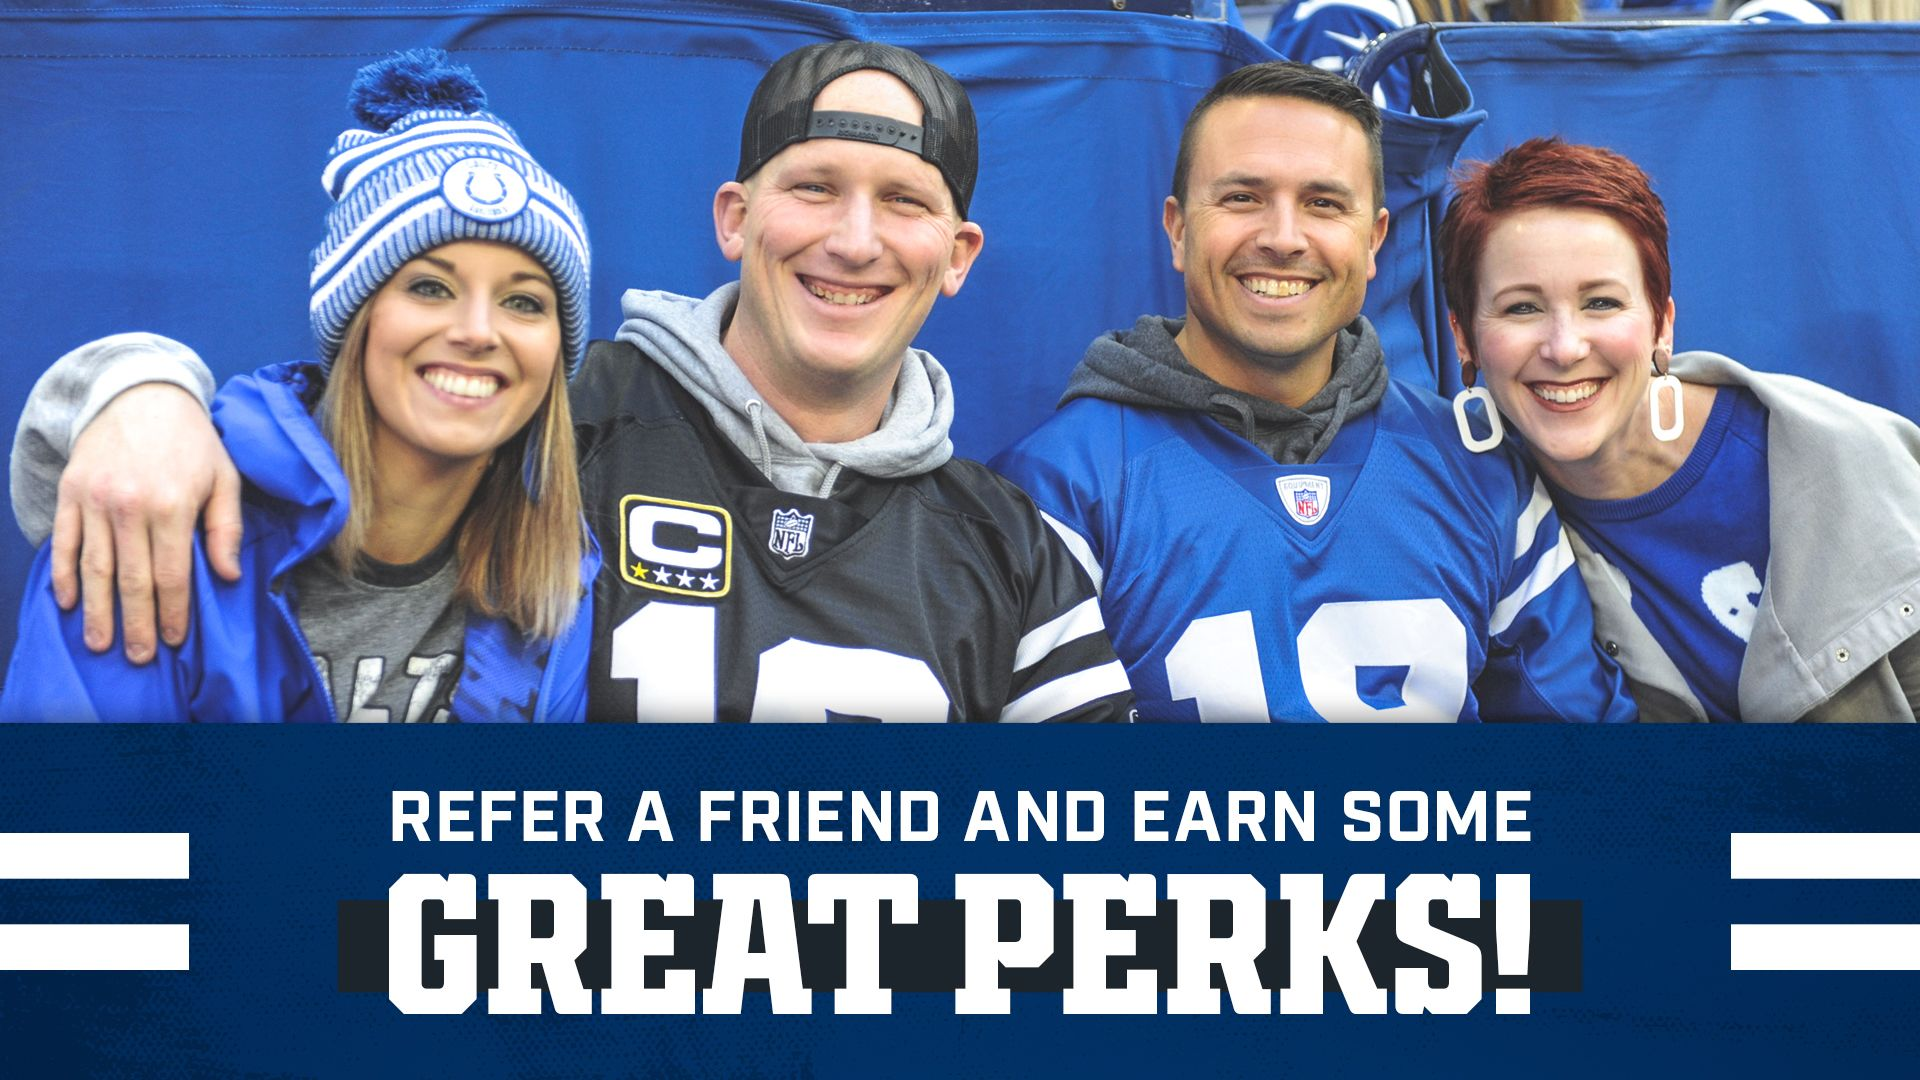 Indianapolis Colts Season Ticket Members  Refer a friend and earn some great perks!